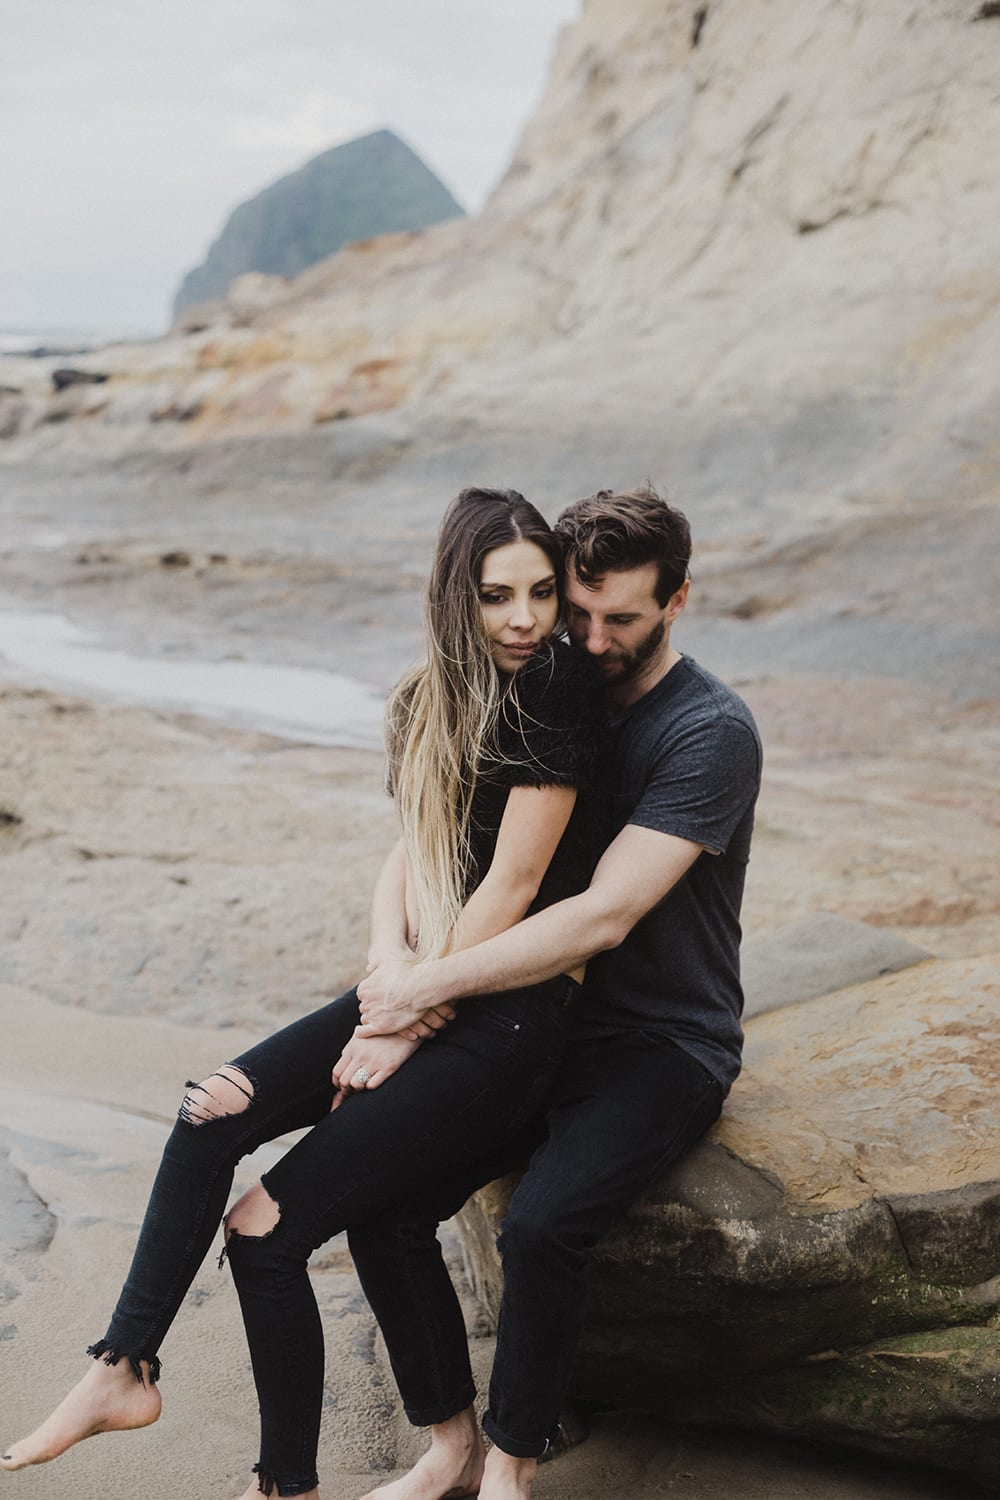 guy squeezing girl in t shirts and ripped jeans